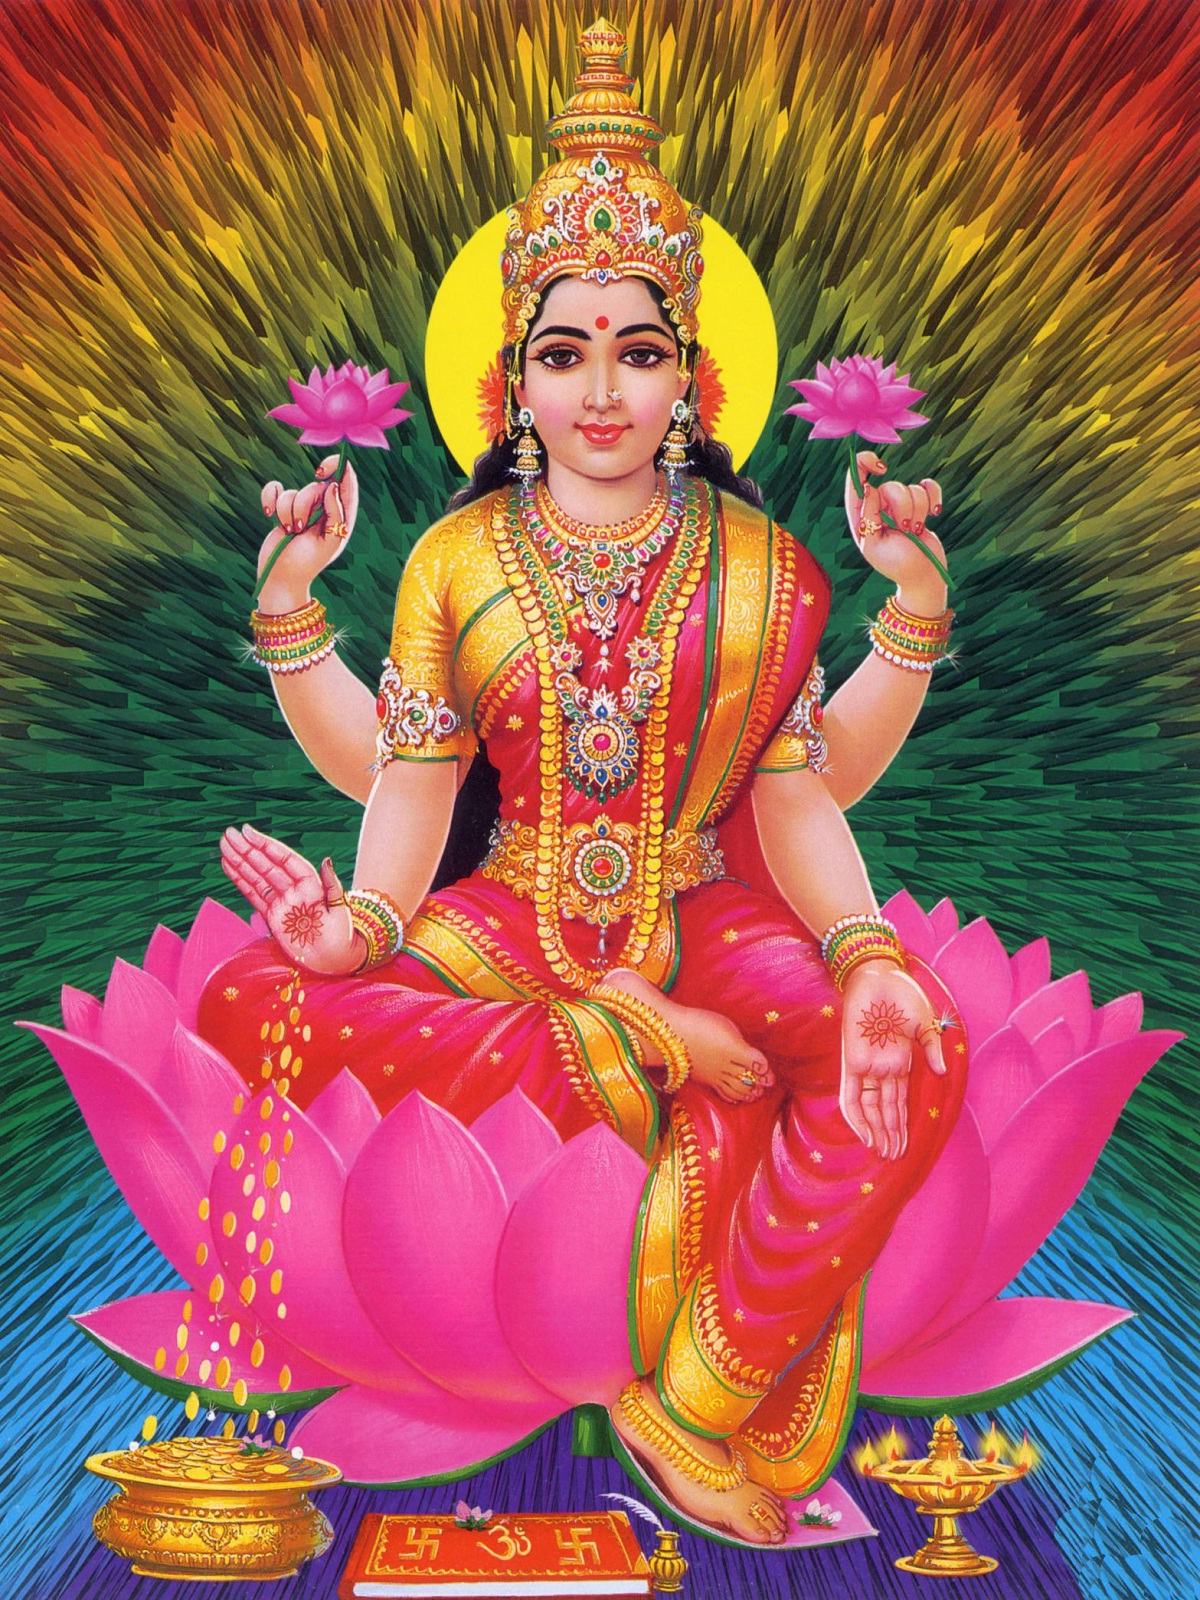 Laxmi Devi images hd wallpapers (55 Wallpapers) - Adorable ...